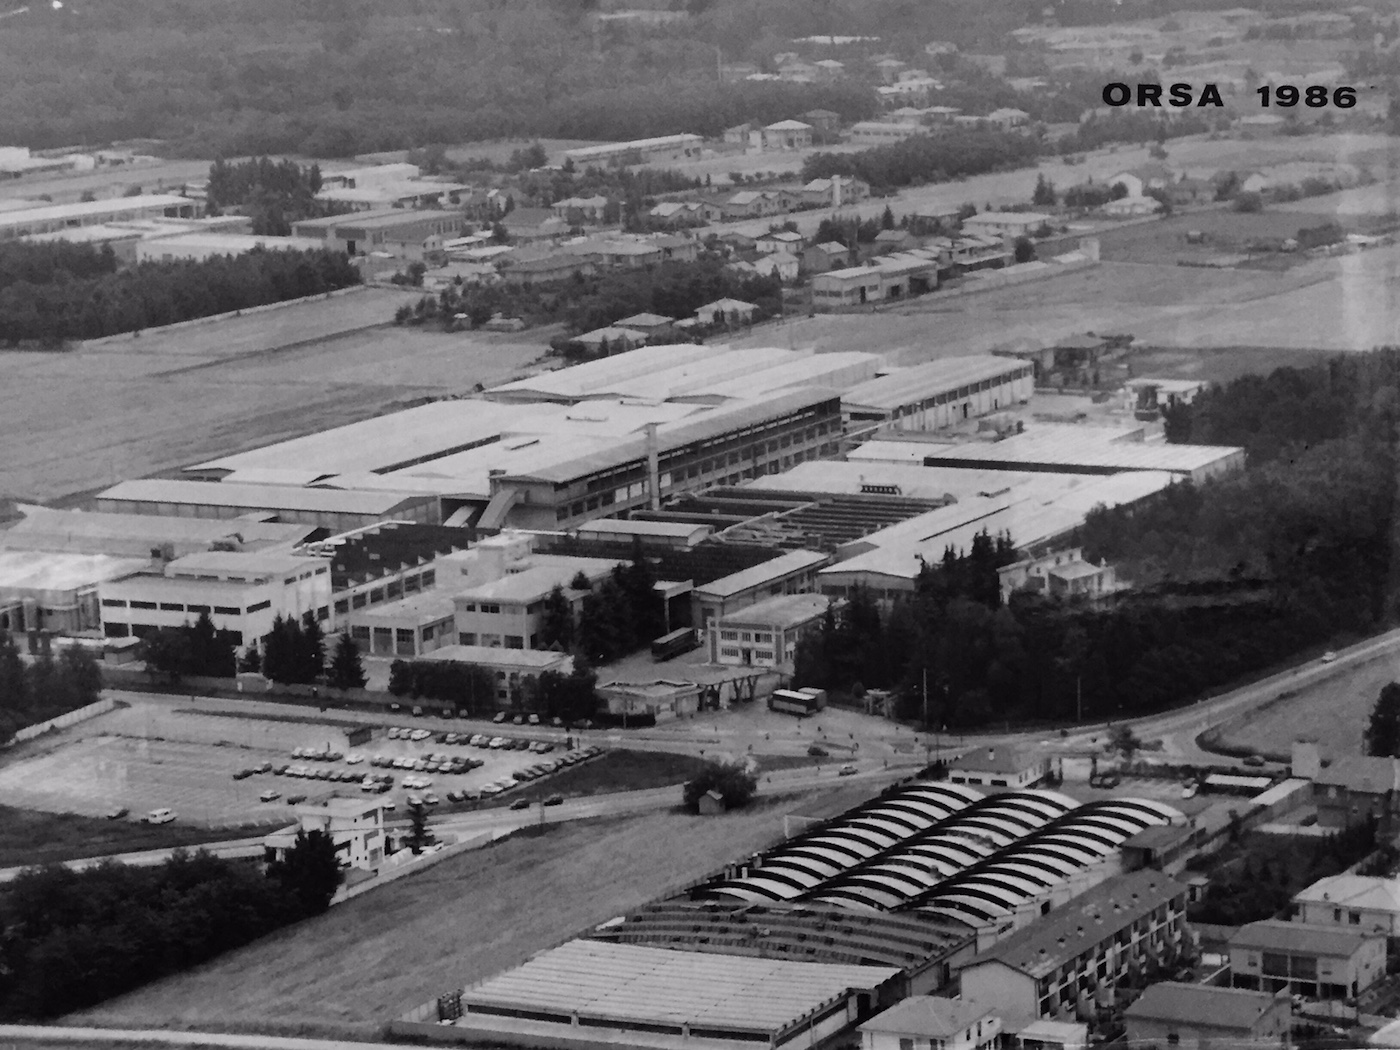 Orsa Headquarter in 1986